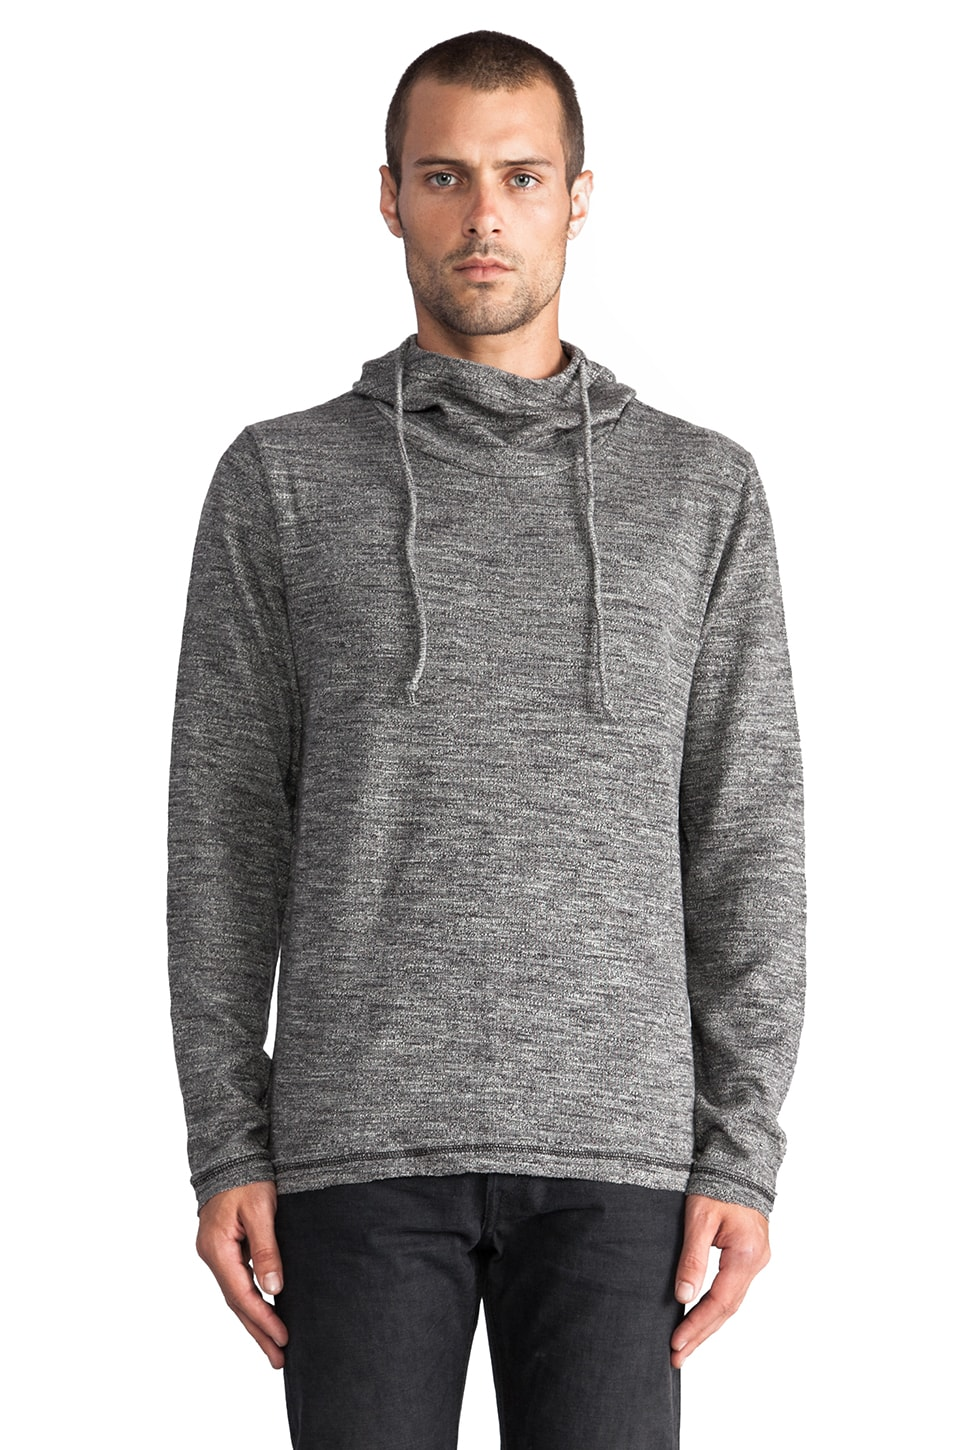 TOVAR Chris Pullover Hoody in Heather Grey